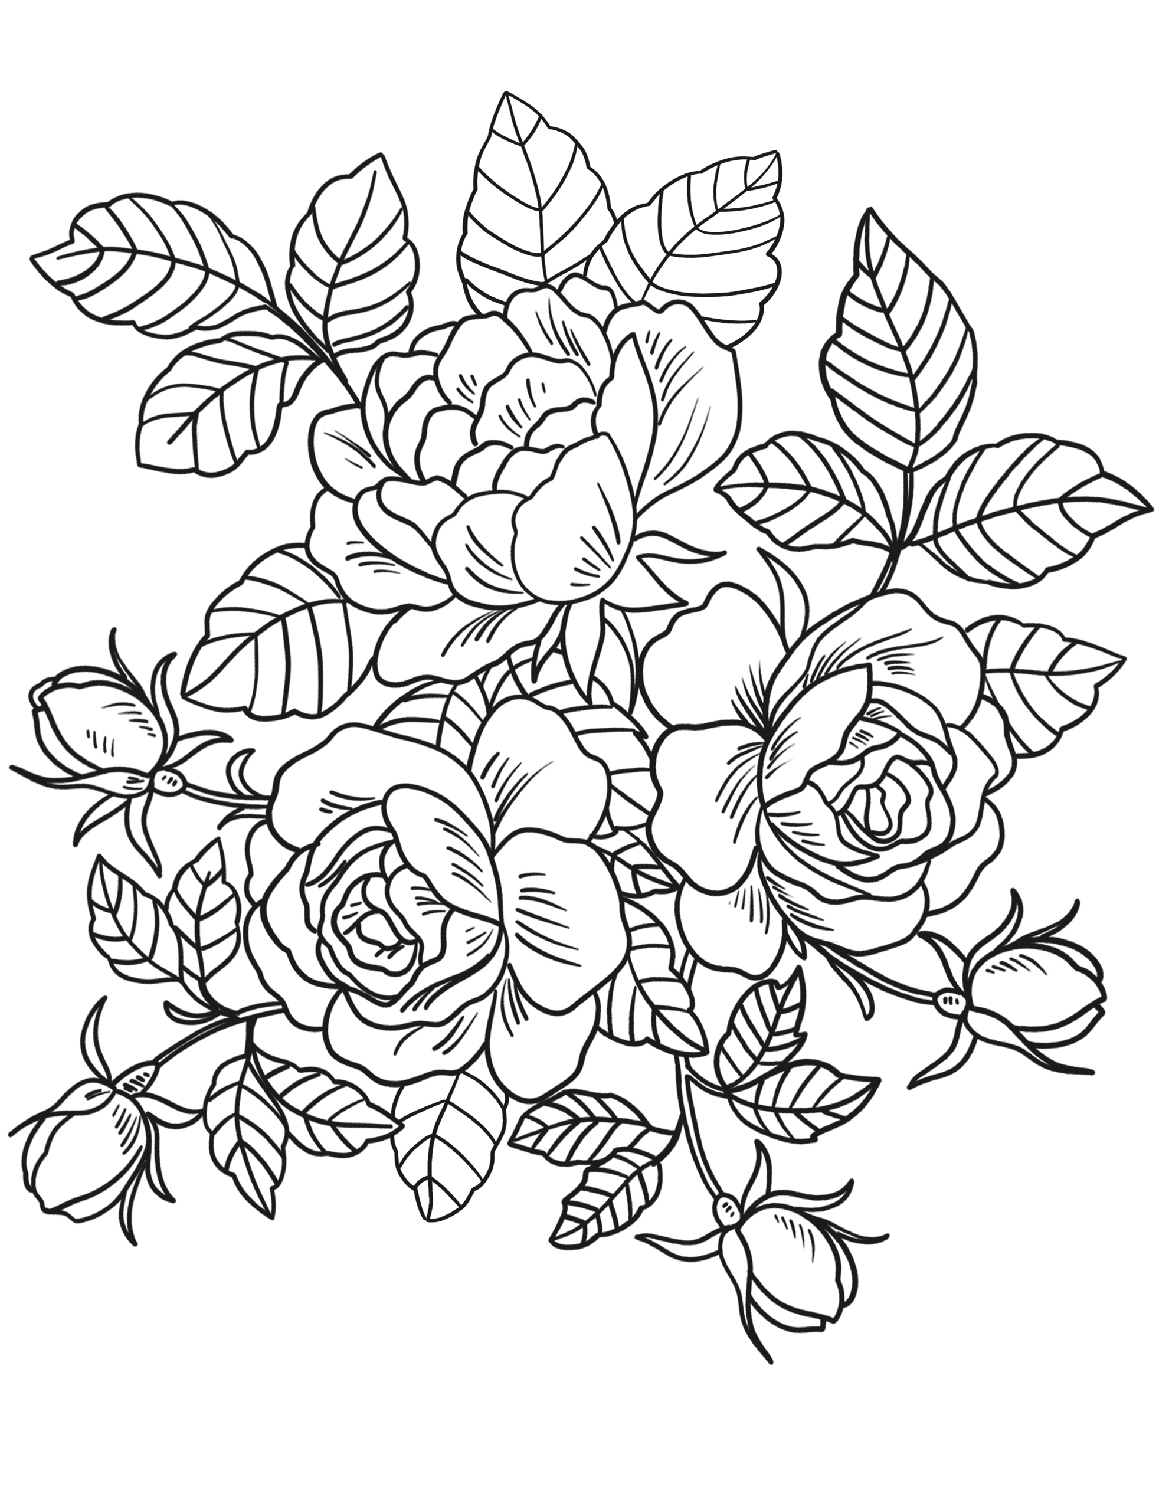 coloring flower pictures flower garden coloring pages to download and print for free pictures coloring flower